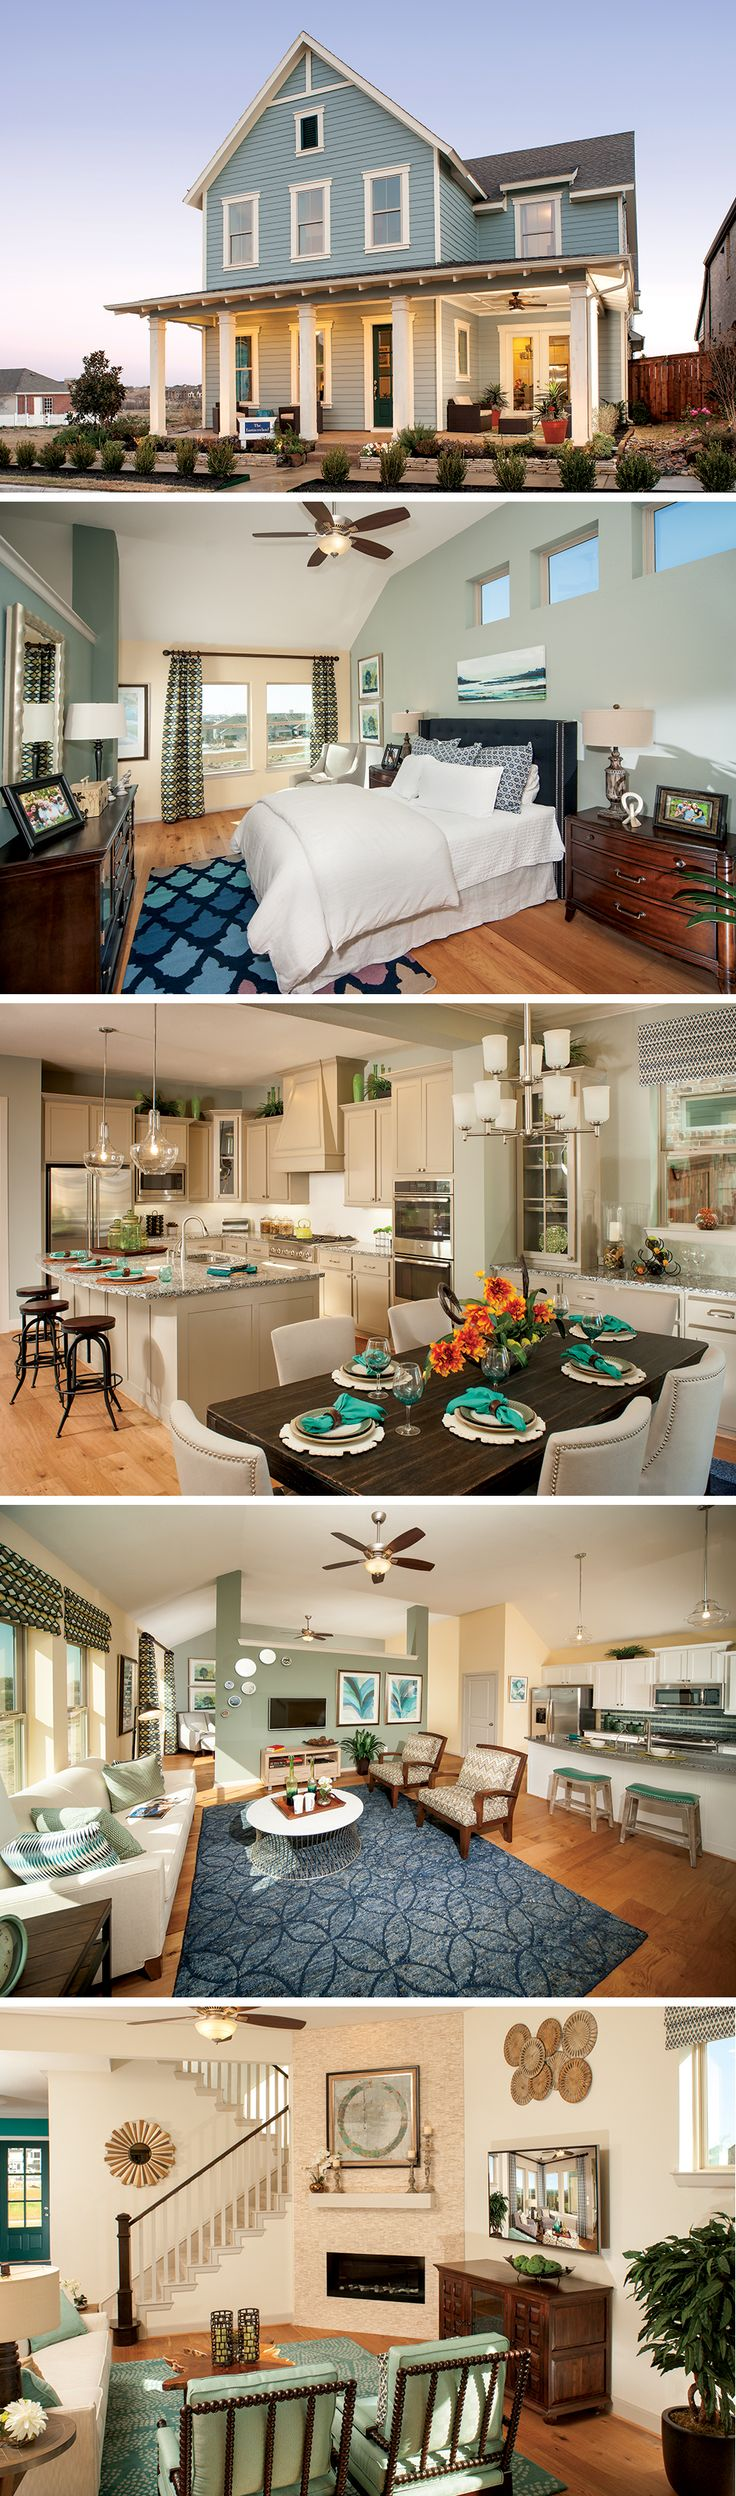 The Eastmoreland by David Weekley Homes in Raiford Crossing is a 4 or 5 bedroom home that features a study, an open kitchen and family room and a private covered porch. Custom home features include various kitchen upgrades, a sunroom or a large shower in the owners retreat.